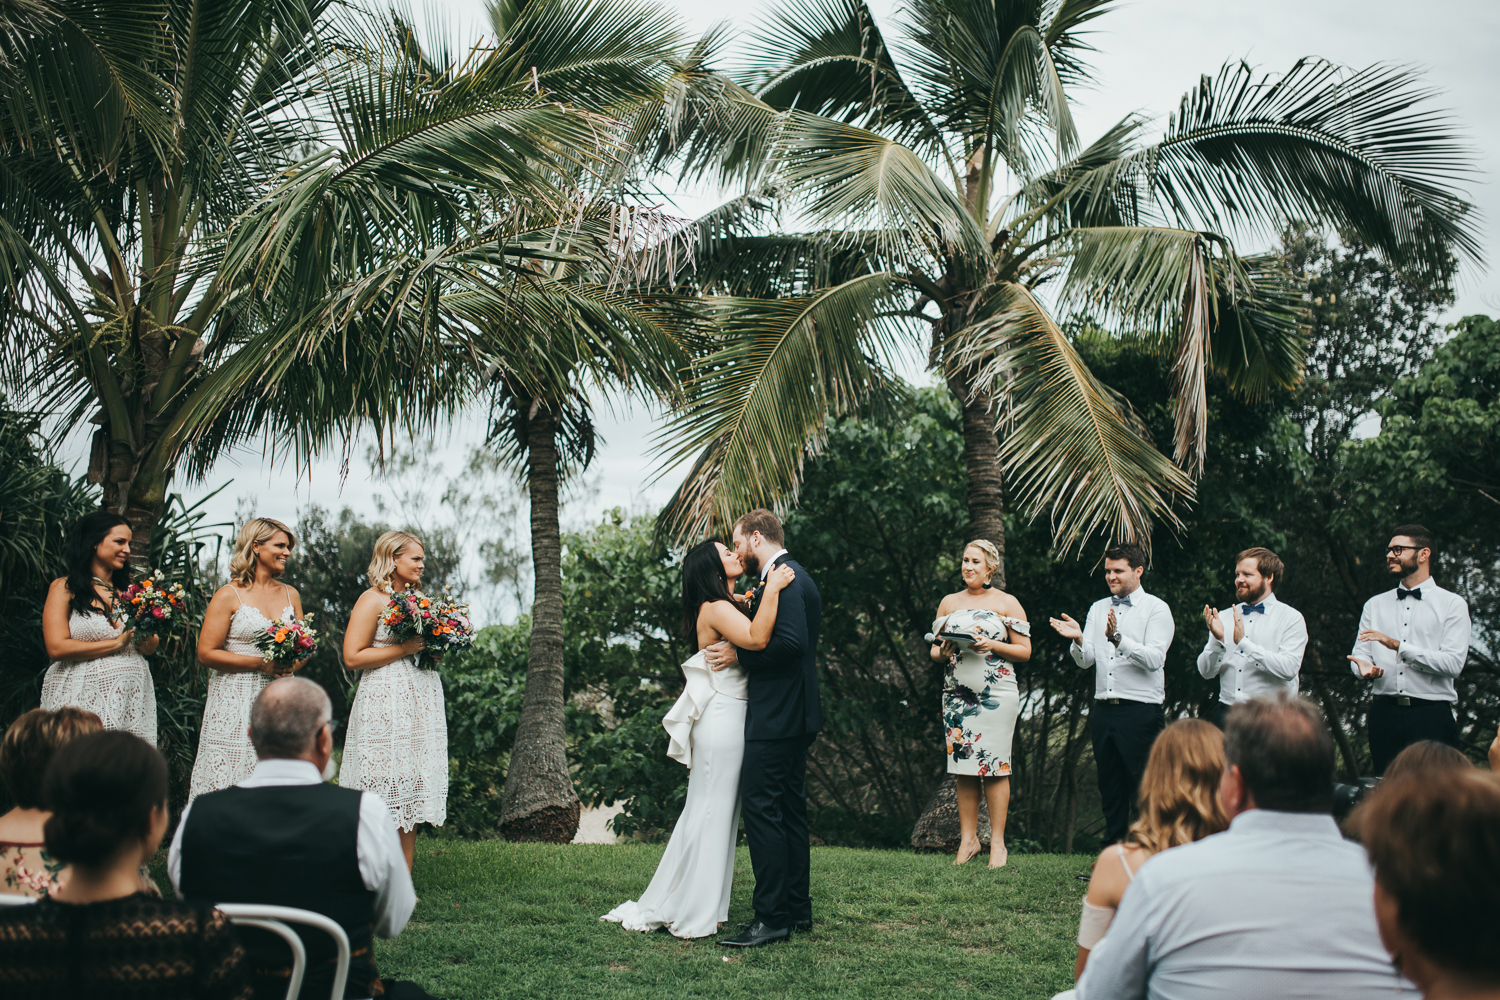 059-halcyon_house_byron_bay_wedding_photographer.jpg